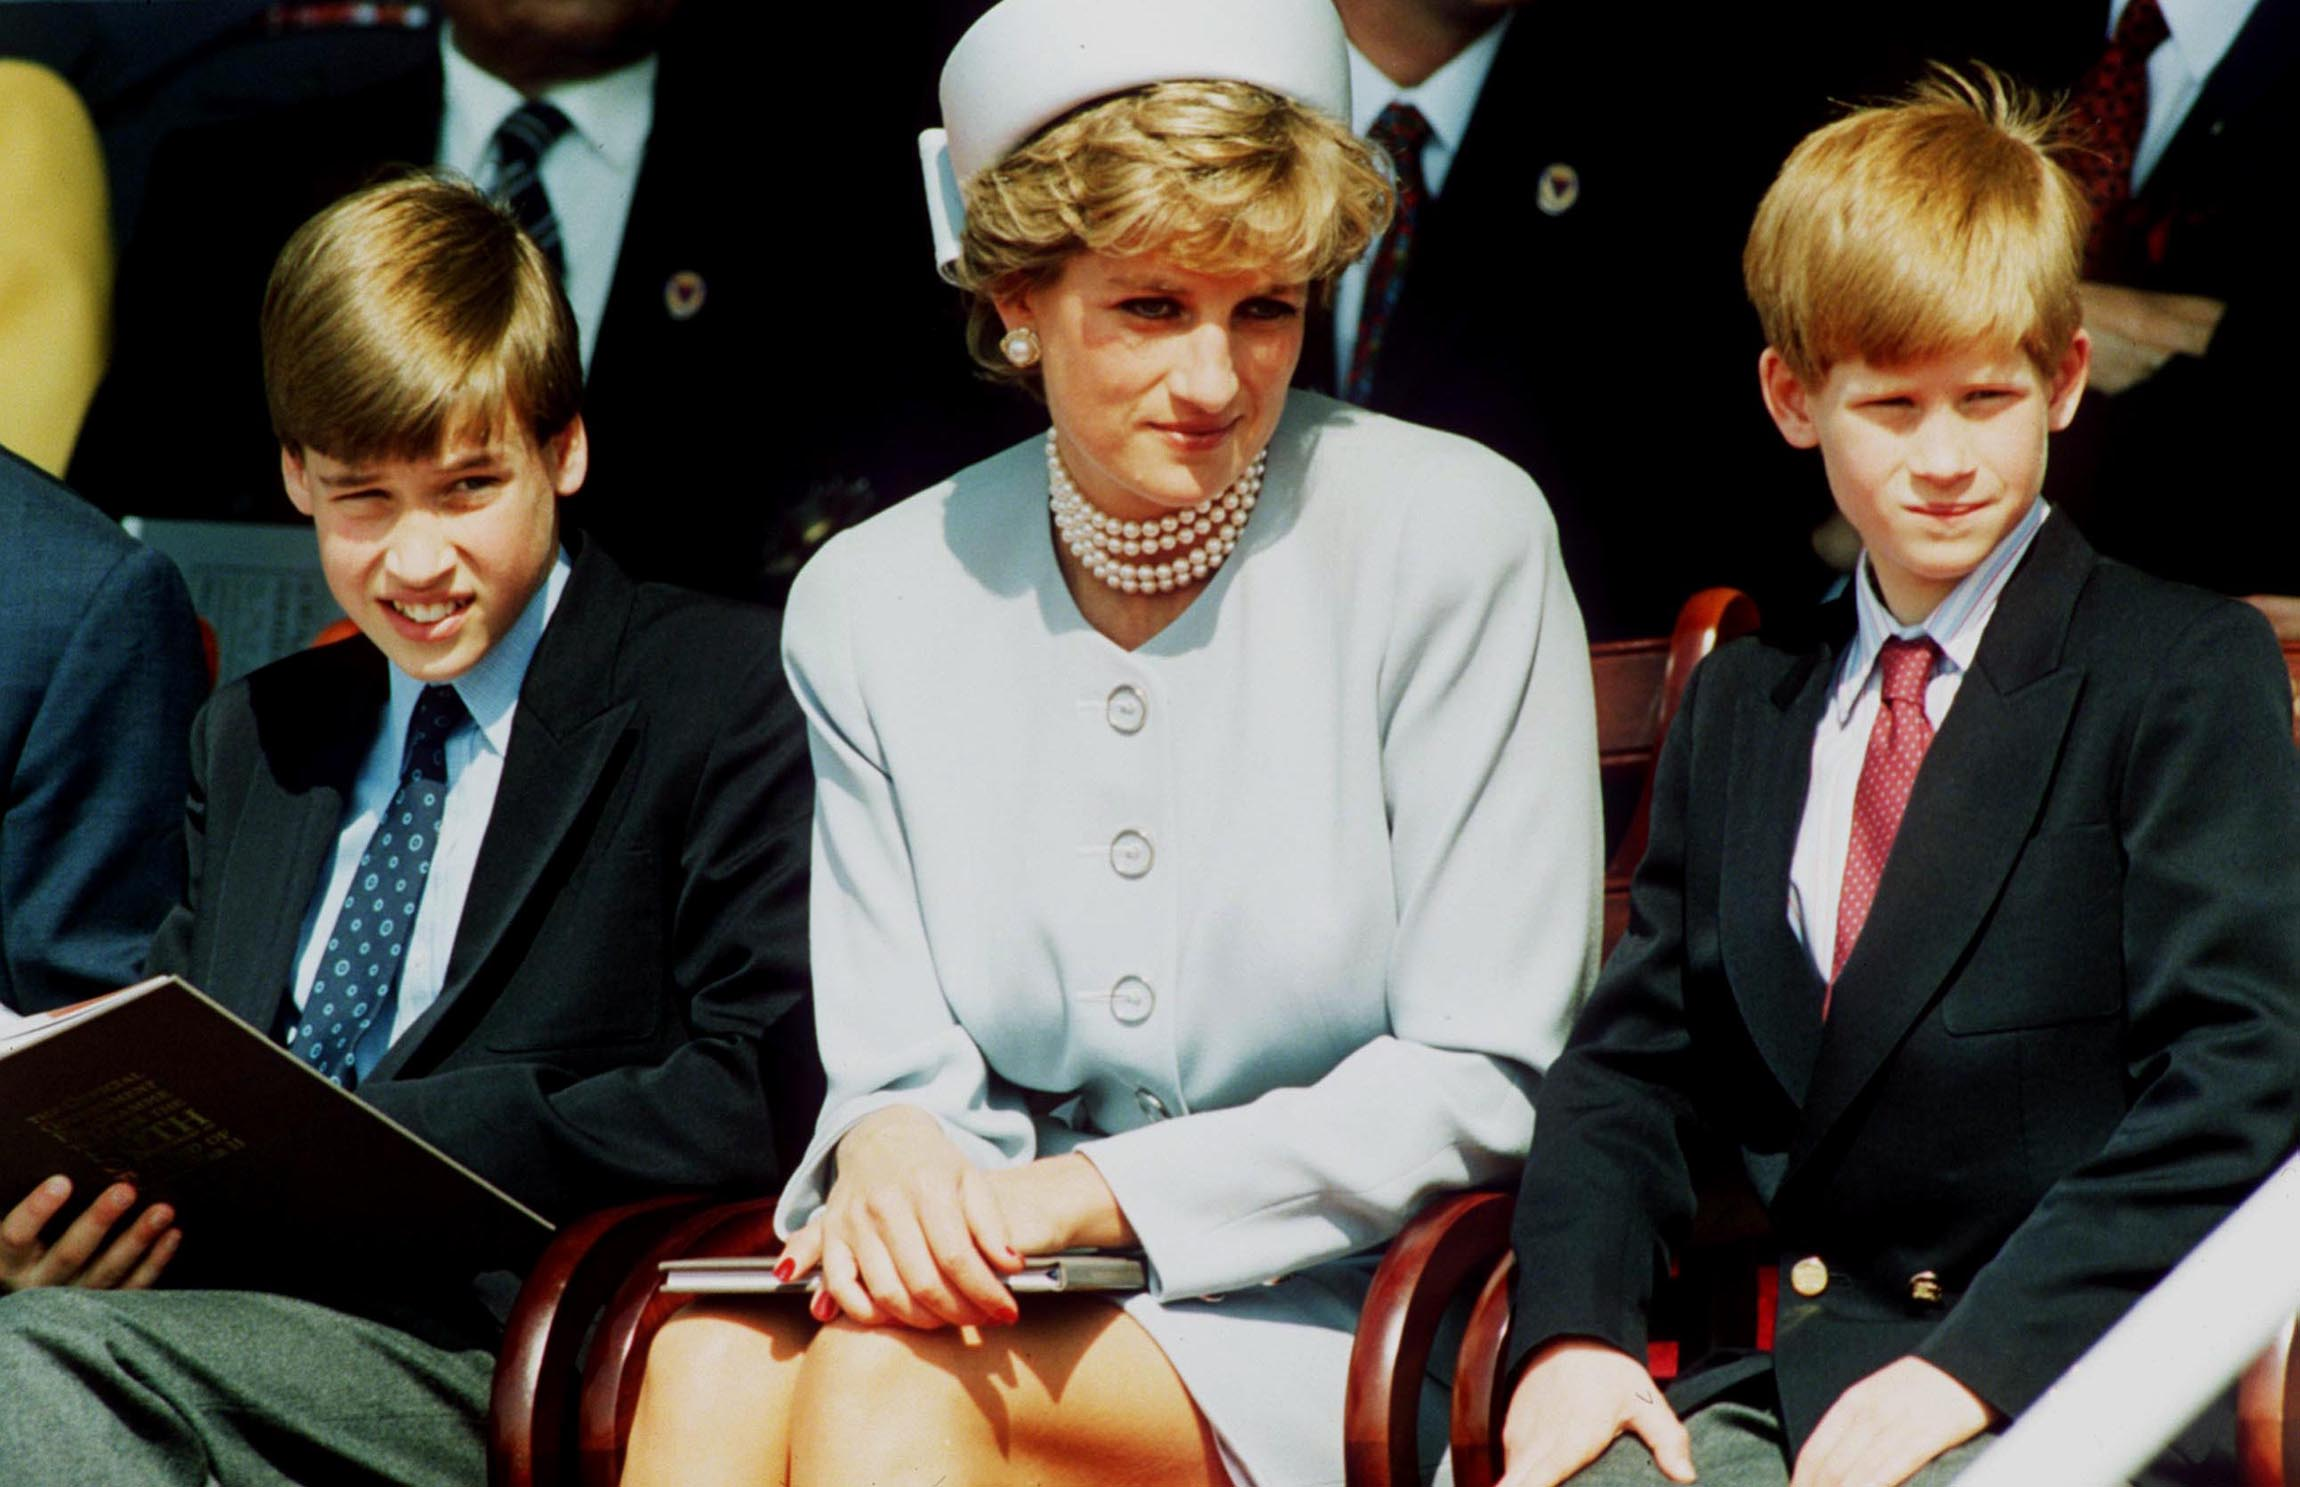 Princess Diana with her sons Prince William and Prince Harry attend the Heads of State VE Remembrance Service in Hyde Park on May 7, 1995 in London, England. | Getty Images